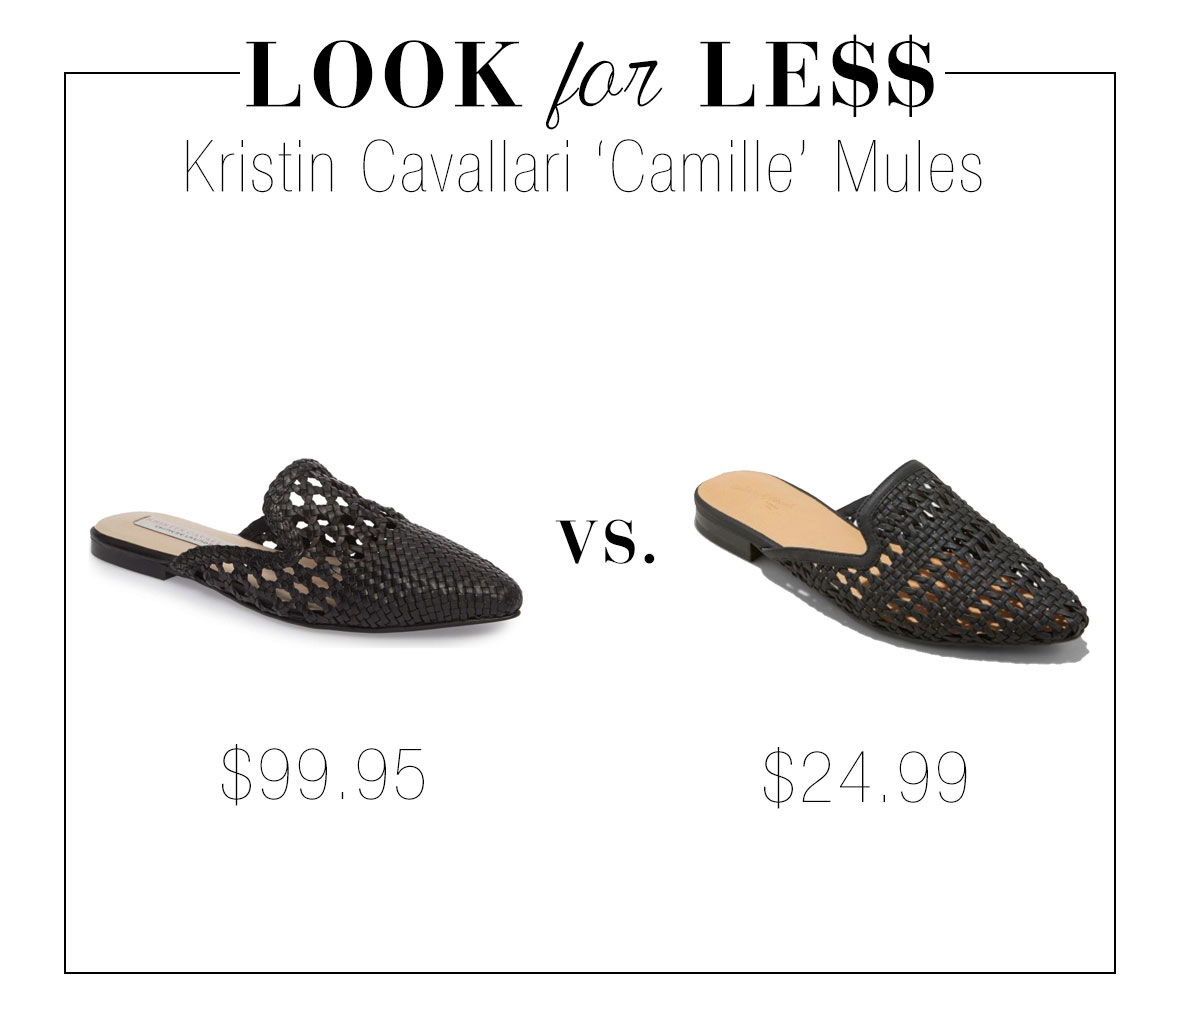 Kristin Cavallari woven mules look for less - love these for summer